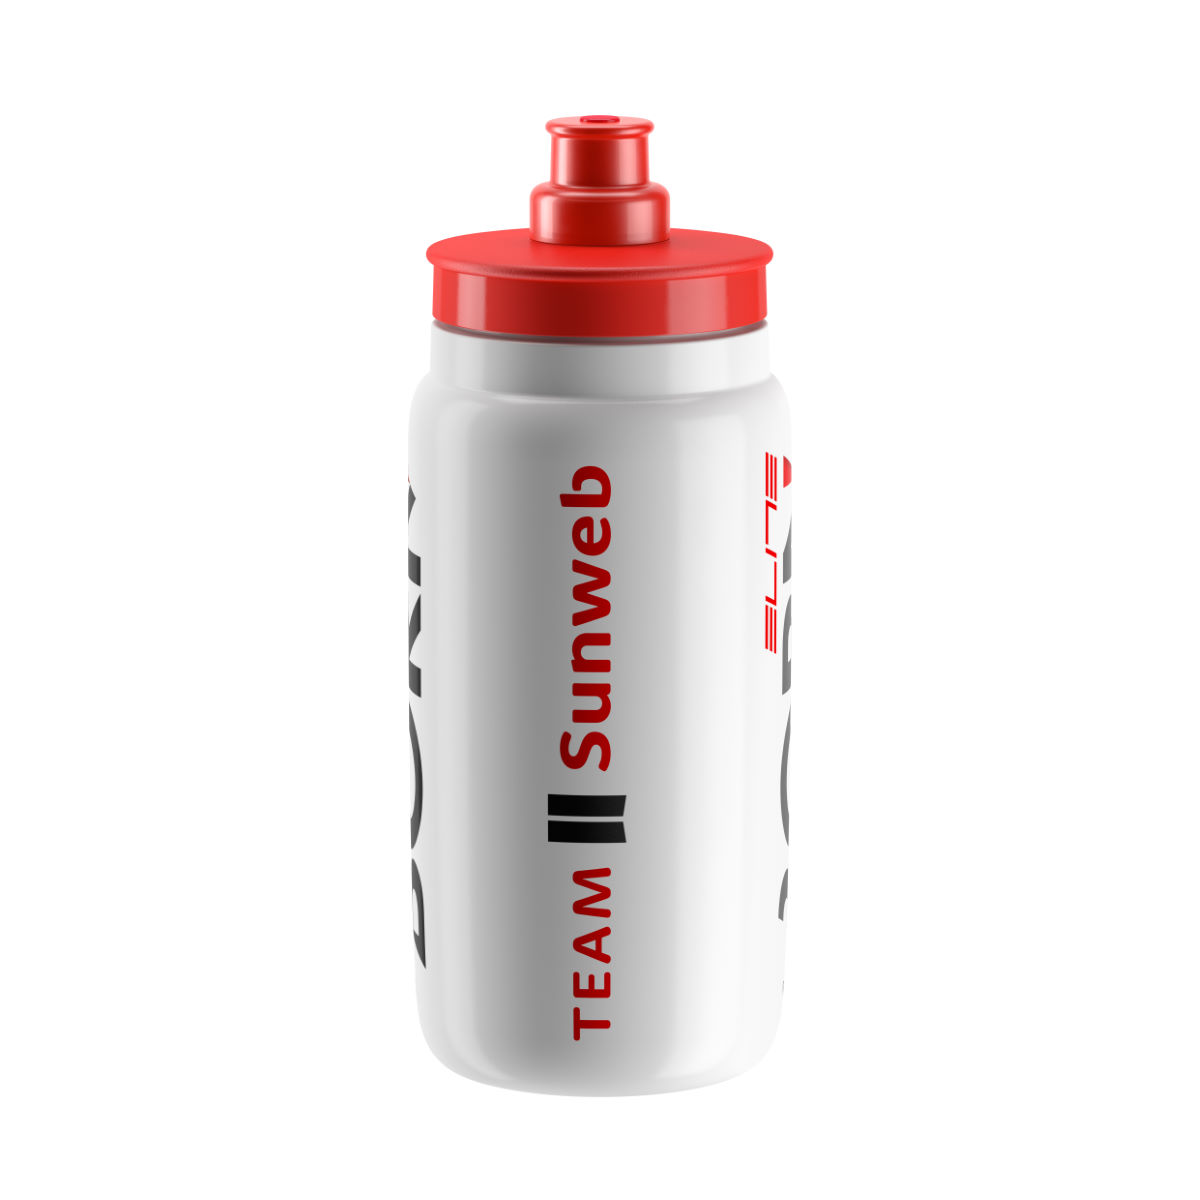 Bidon Elite Fly Sunweb (2017) - One Size White/red Bidons